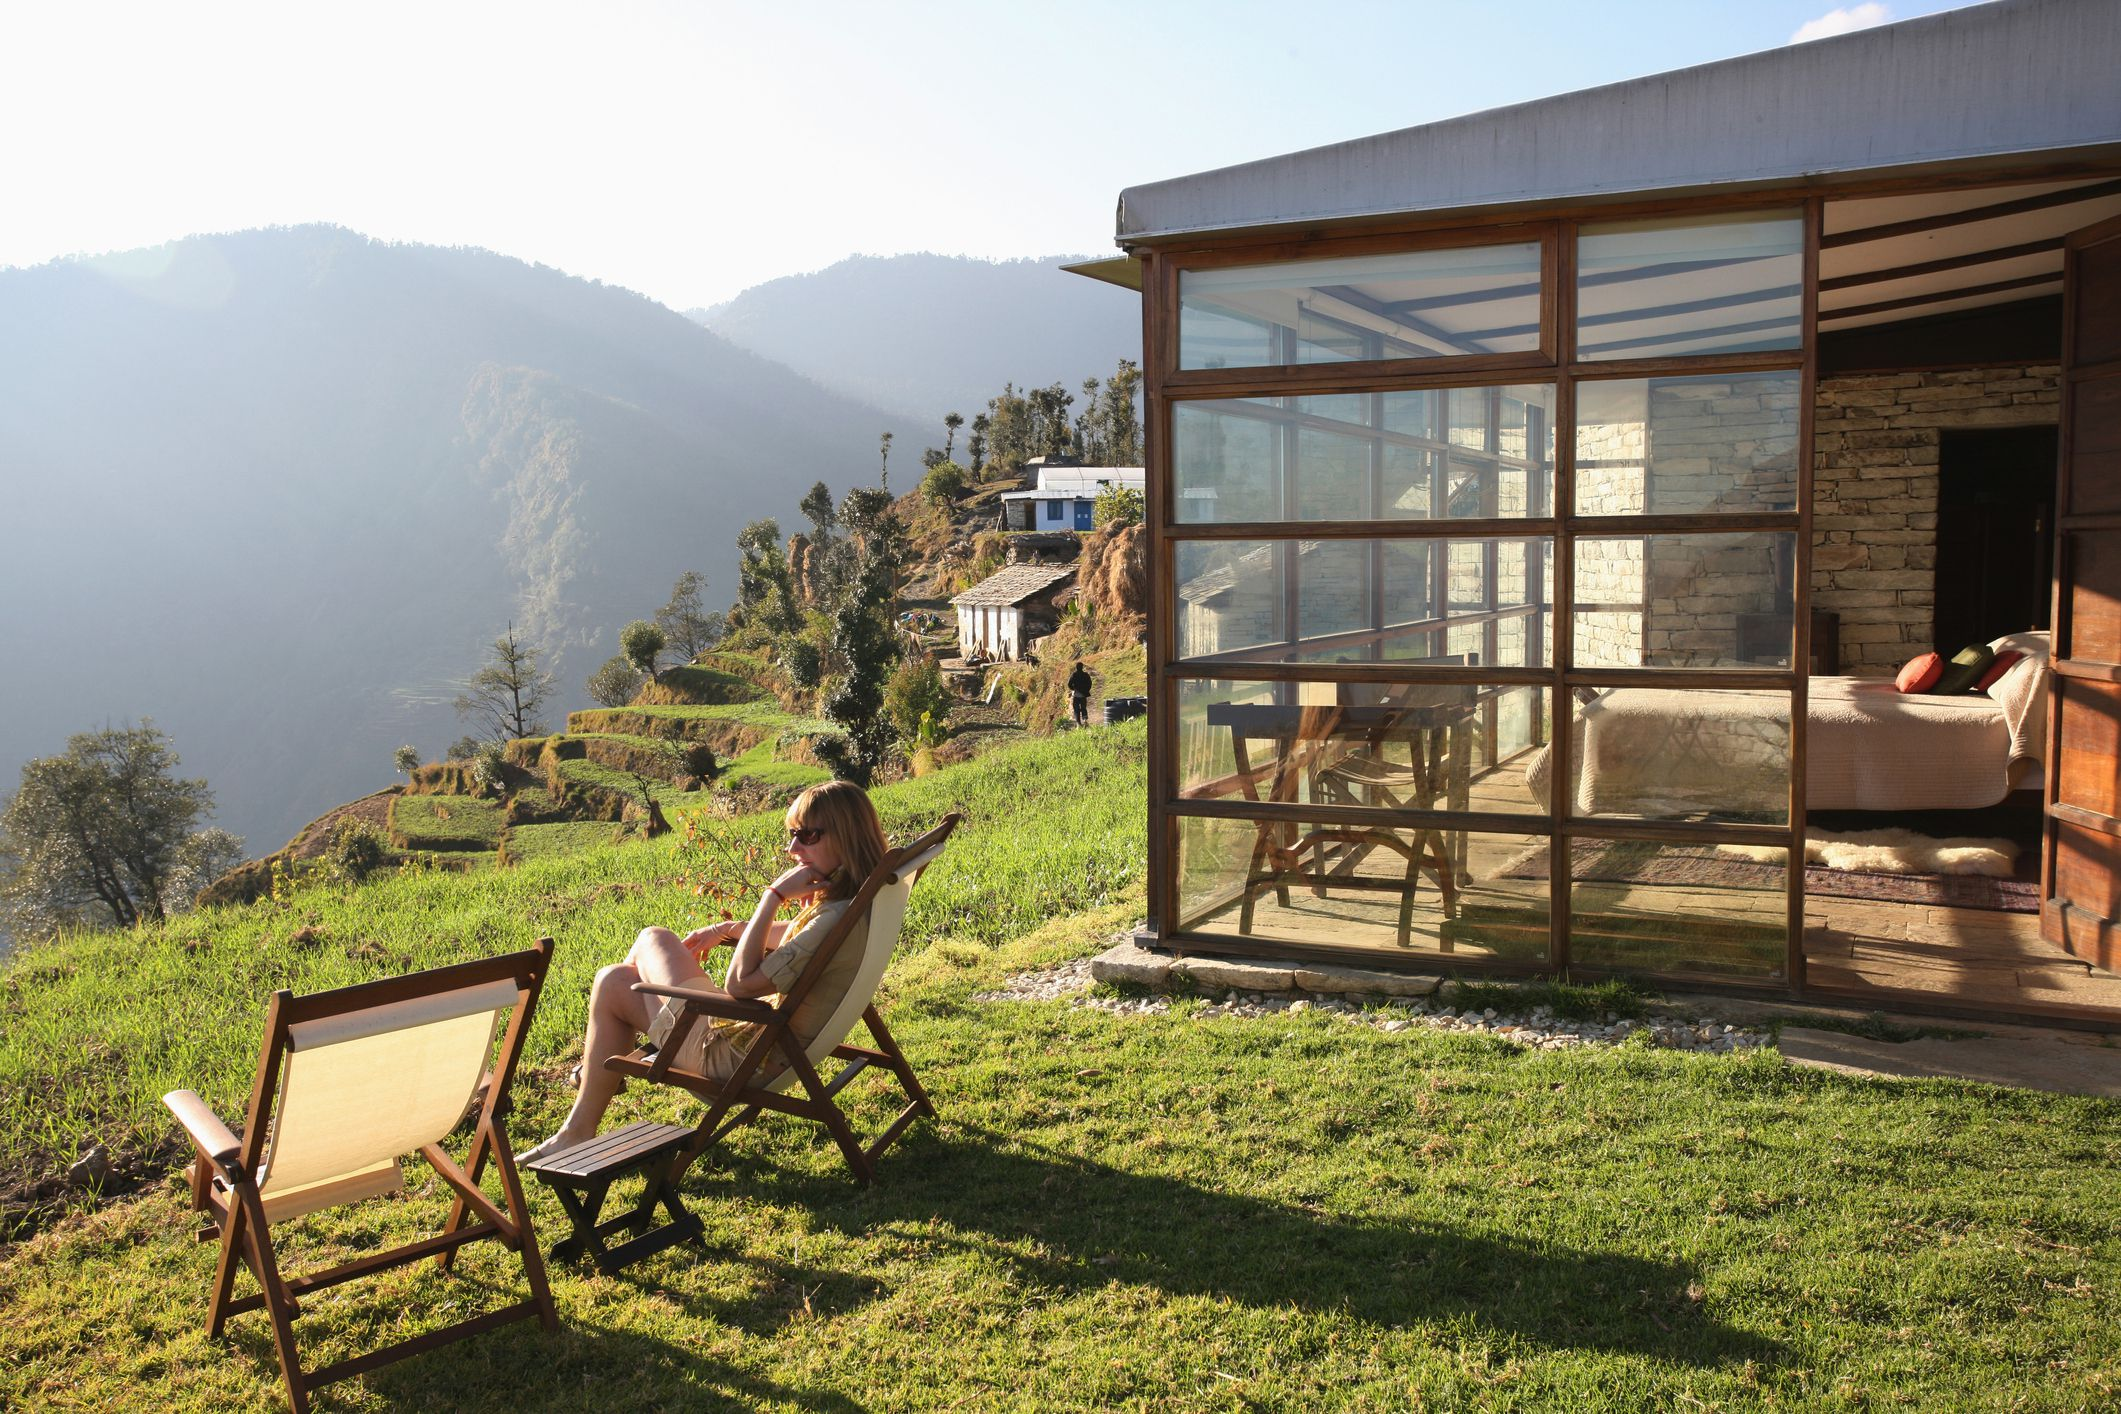 15 boutique himalayan getaways off the beaten track in india for Boutique getaways